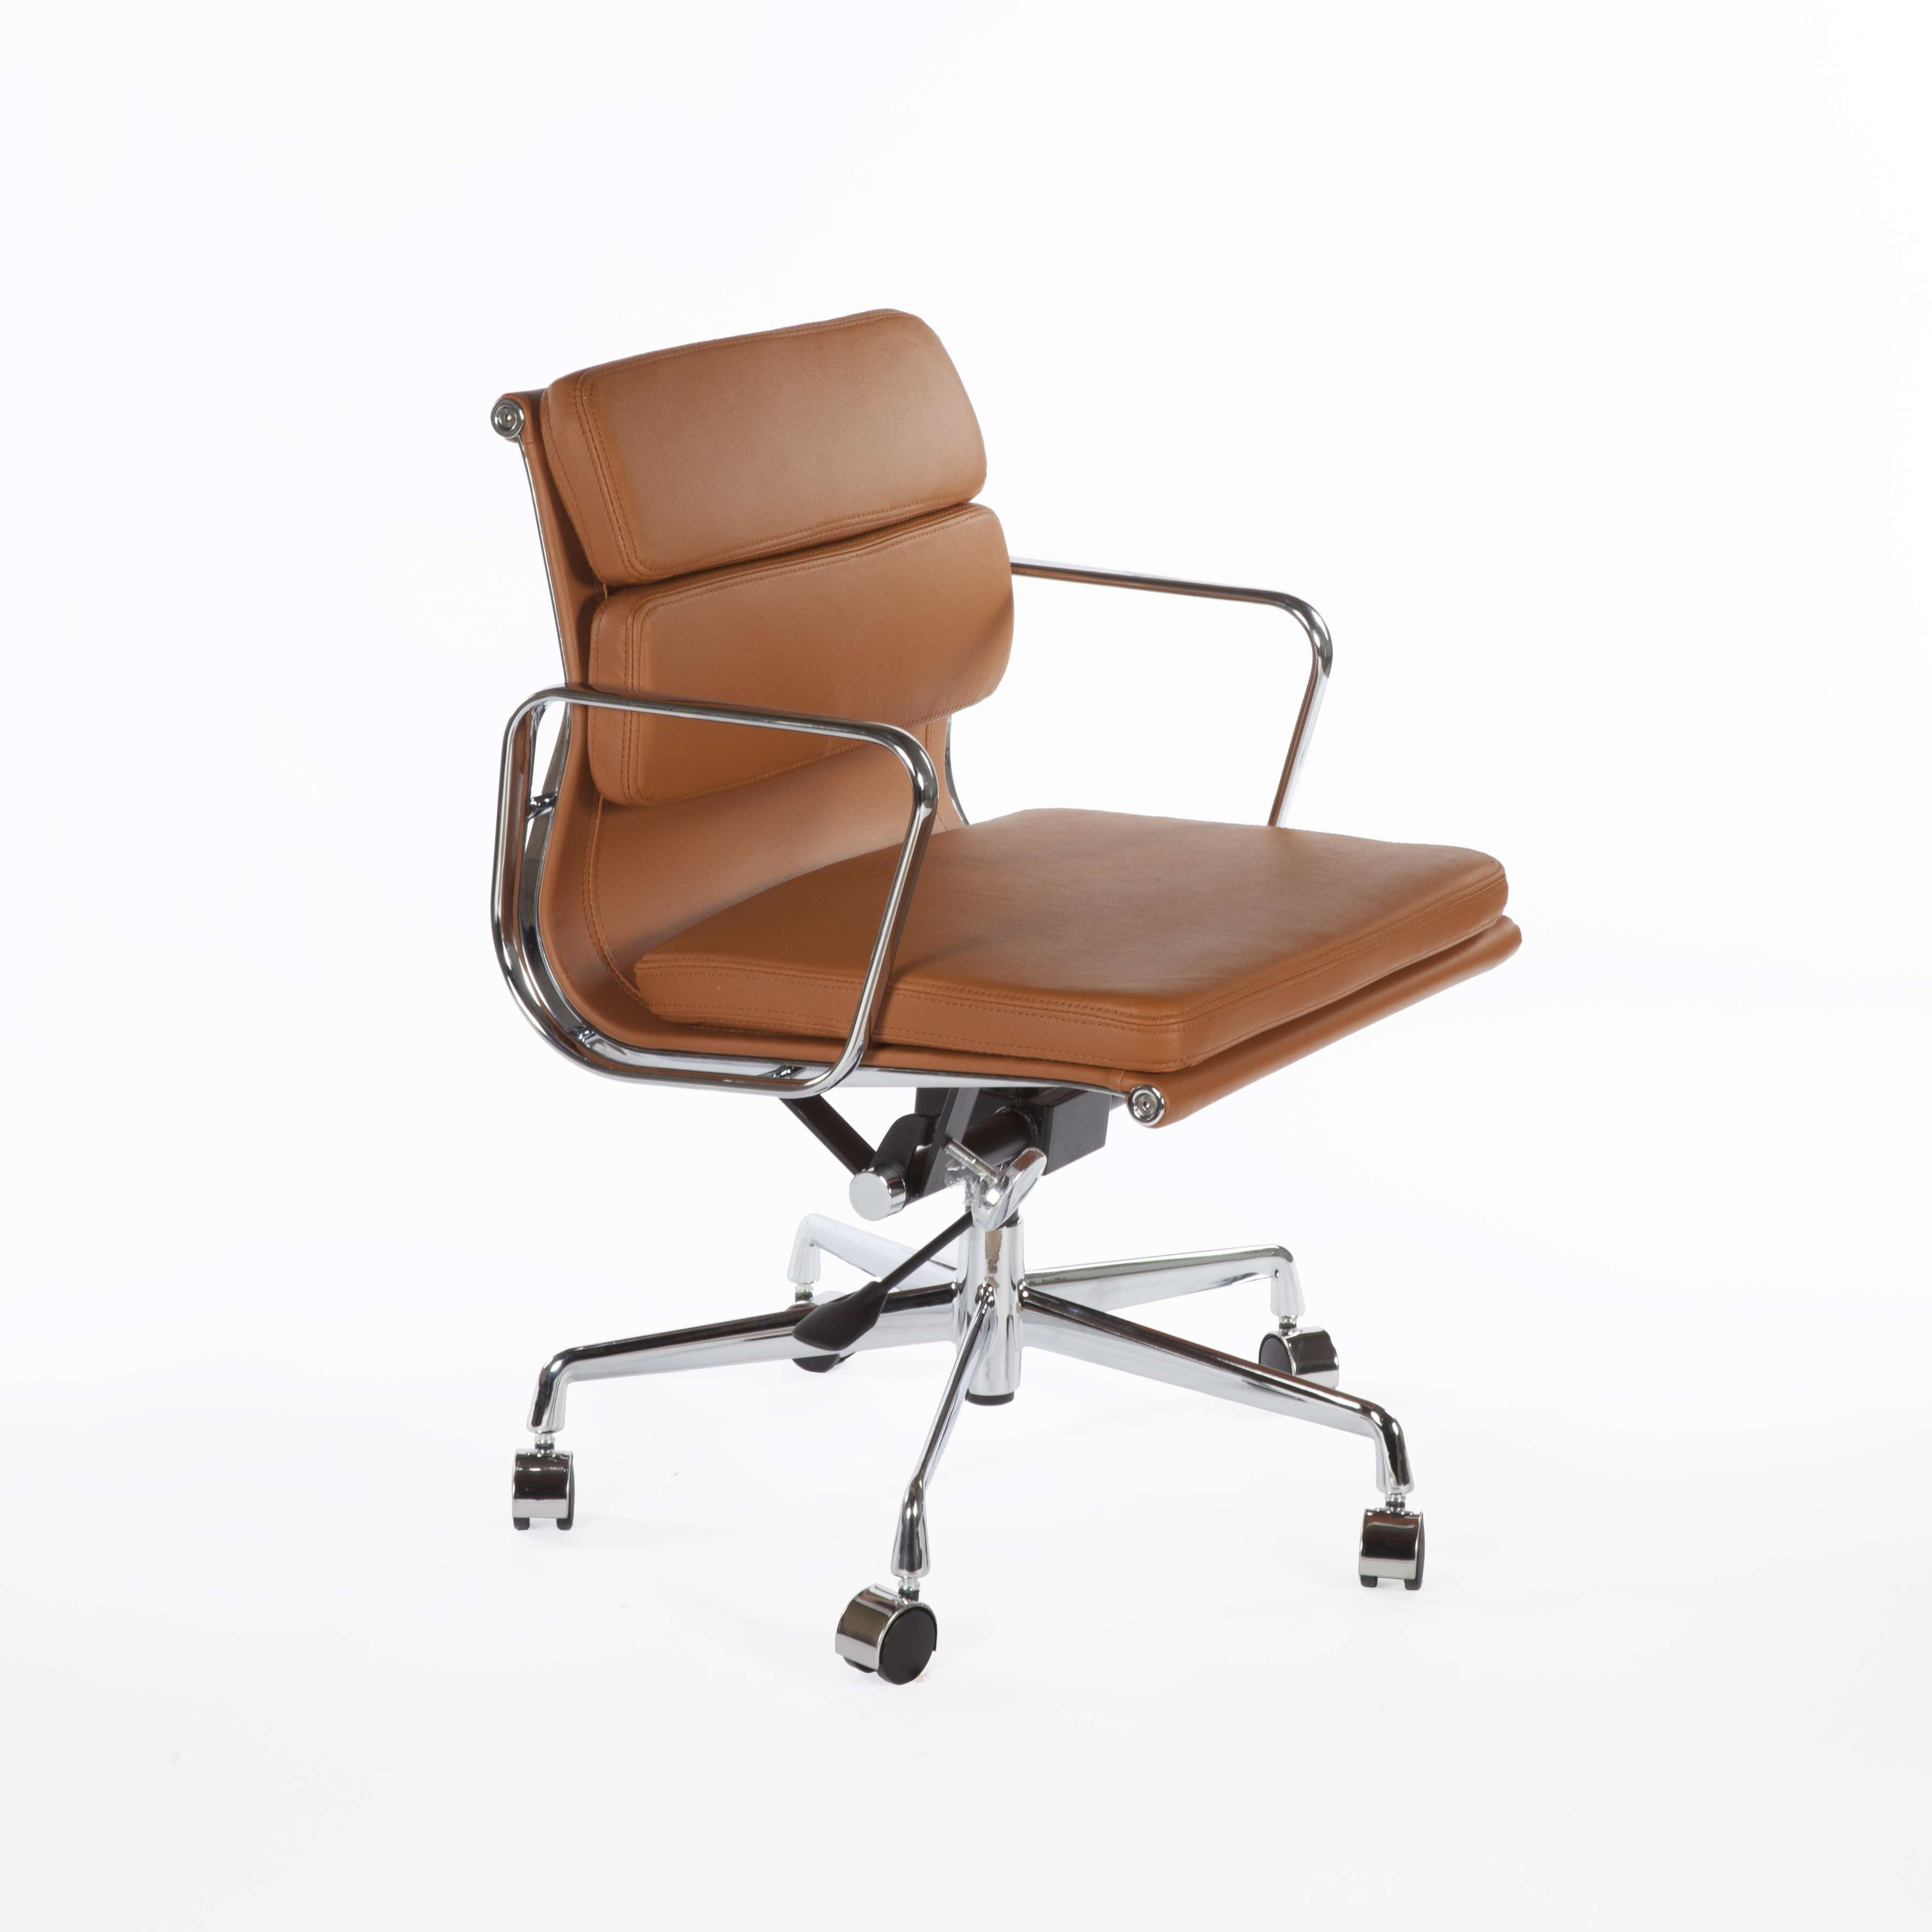 Catania Office Chair In Real Leather With Cast Aluminum Legs And Arms Brown Leather Office Chair Mid Century Modern Office Chair Mid Century Modern Desk Chair